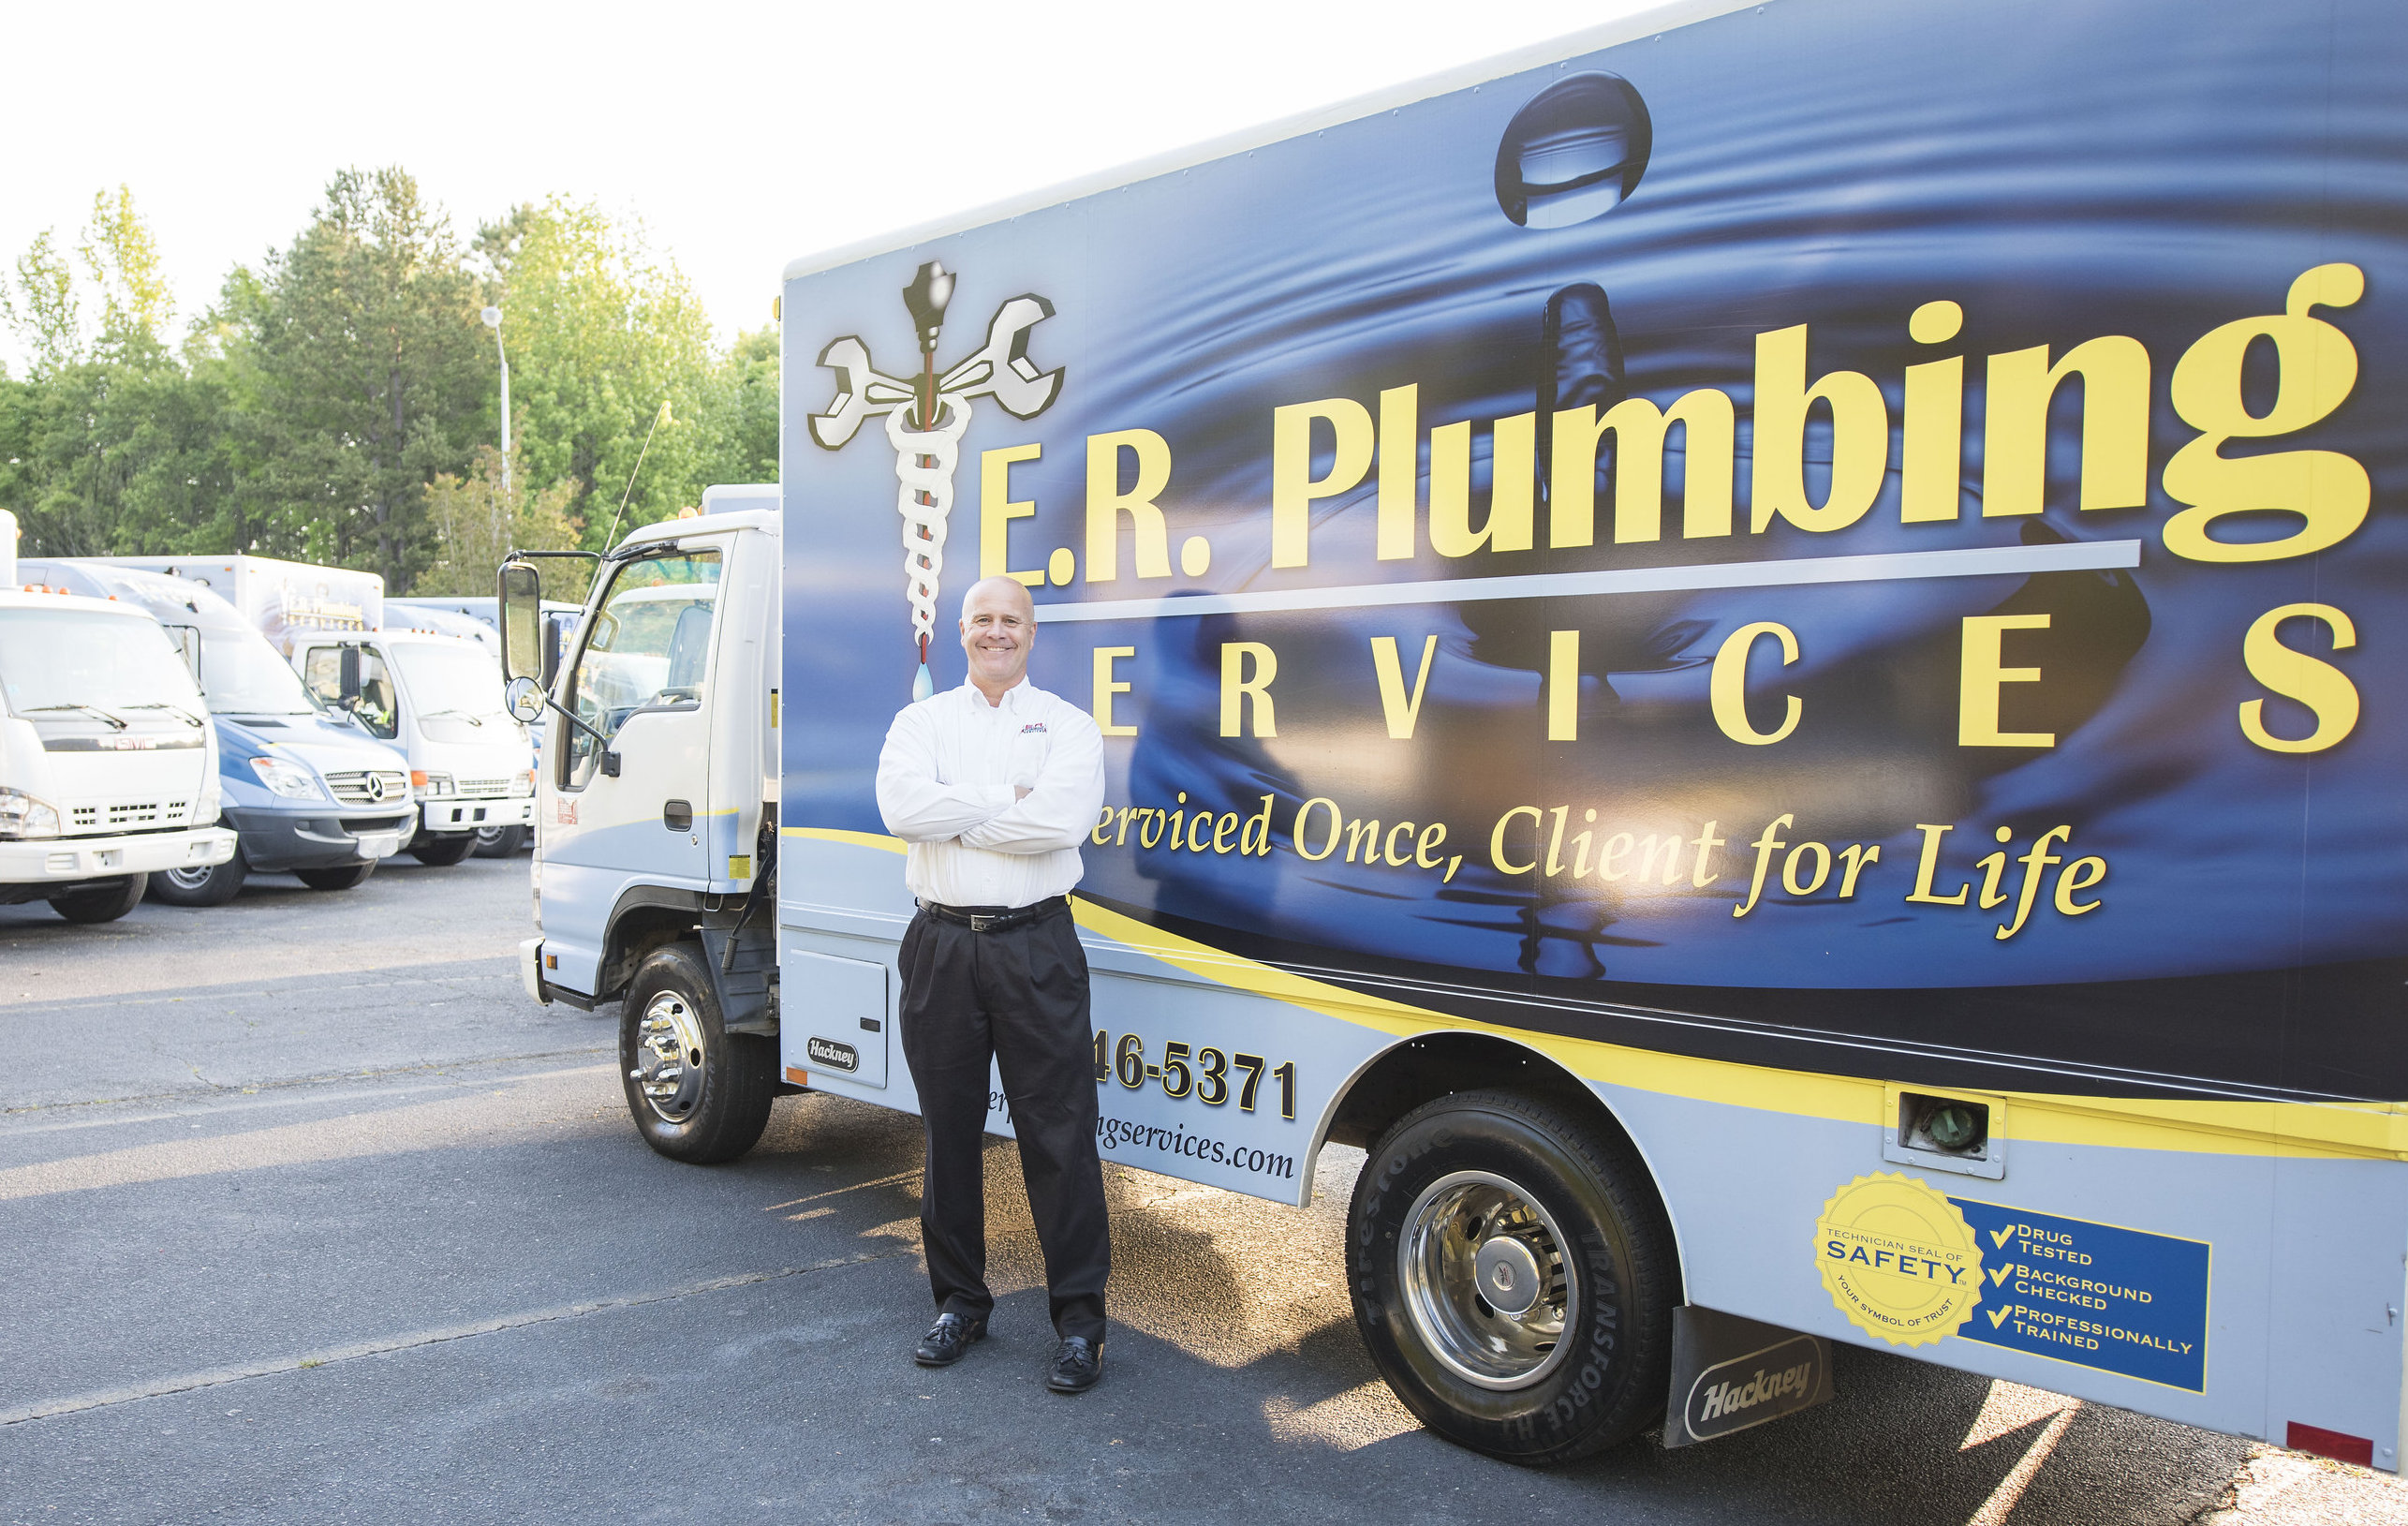 Dave Parker, Owner of ER Plumbing Services of Charlotte NC